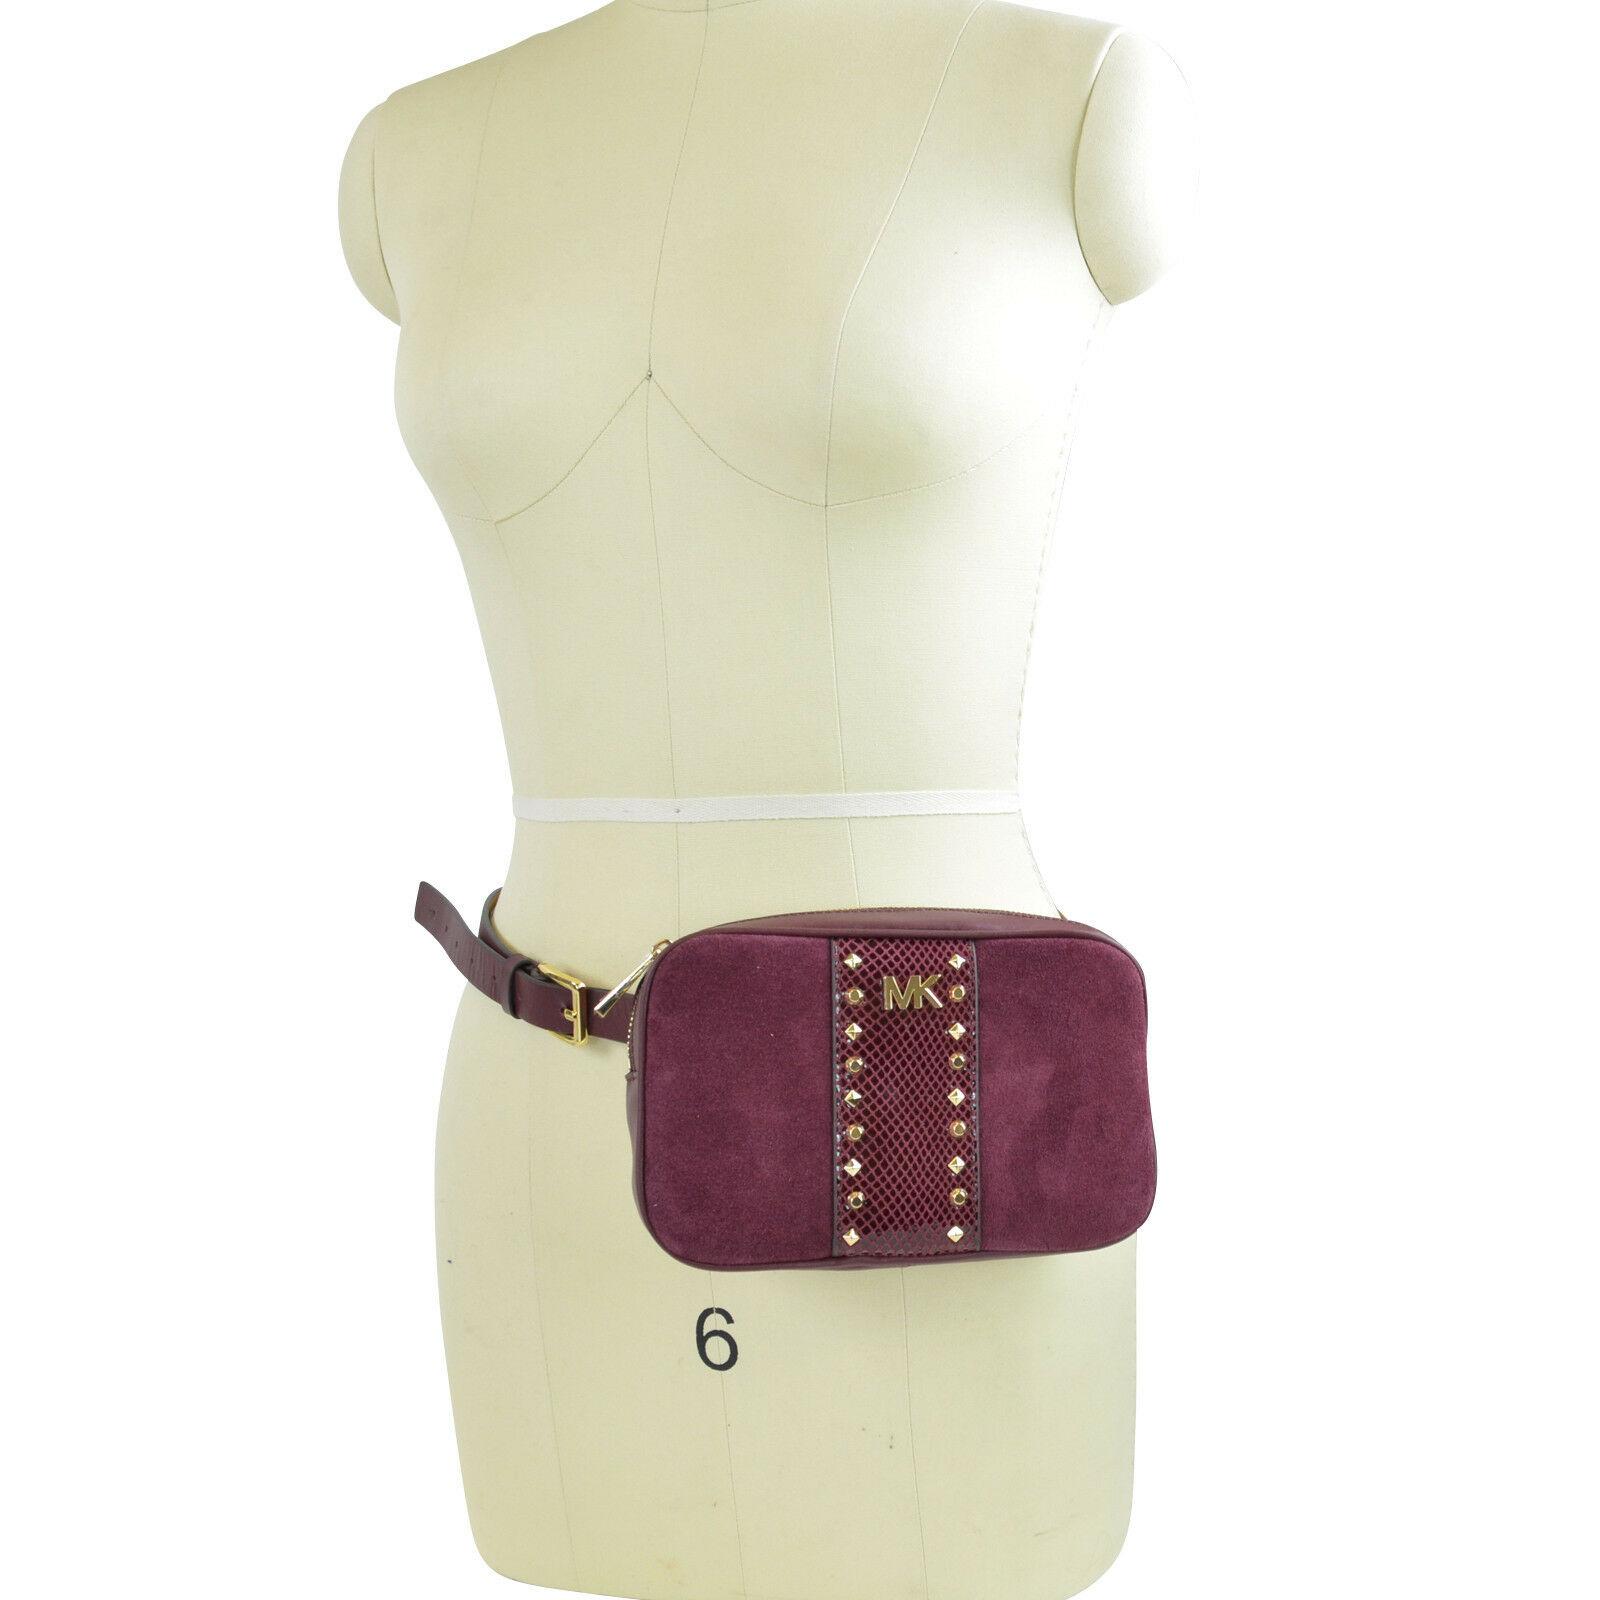 db2cf85ebbd962 Details about NWT Michael Kors Studded Fanny Pack Belt Bag in Maroon/ Gold  S/M